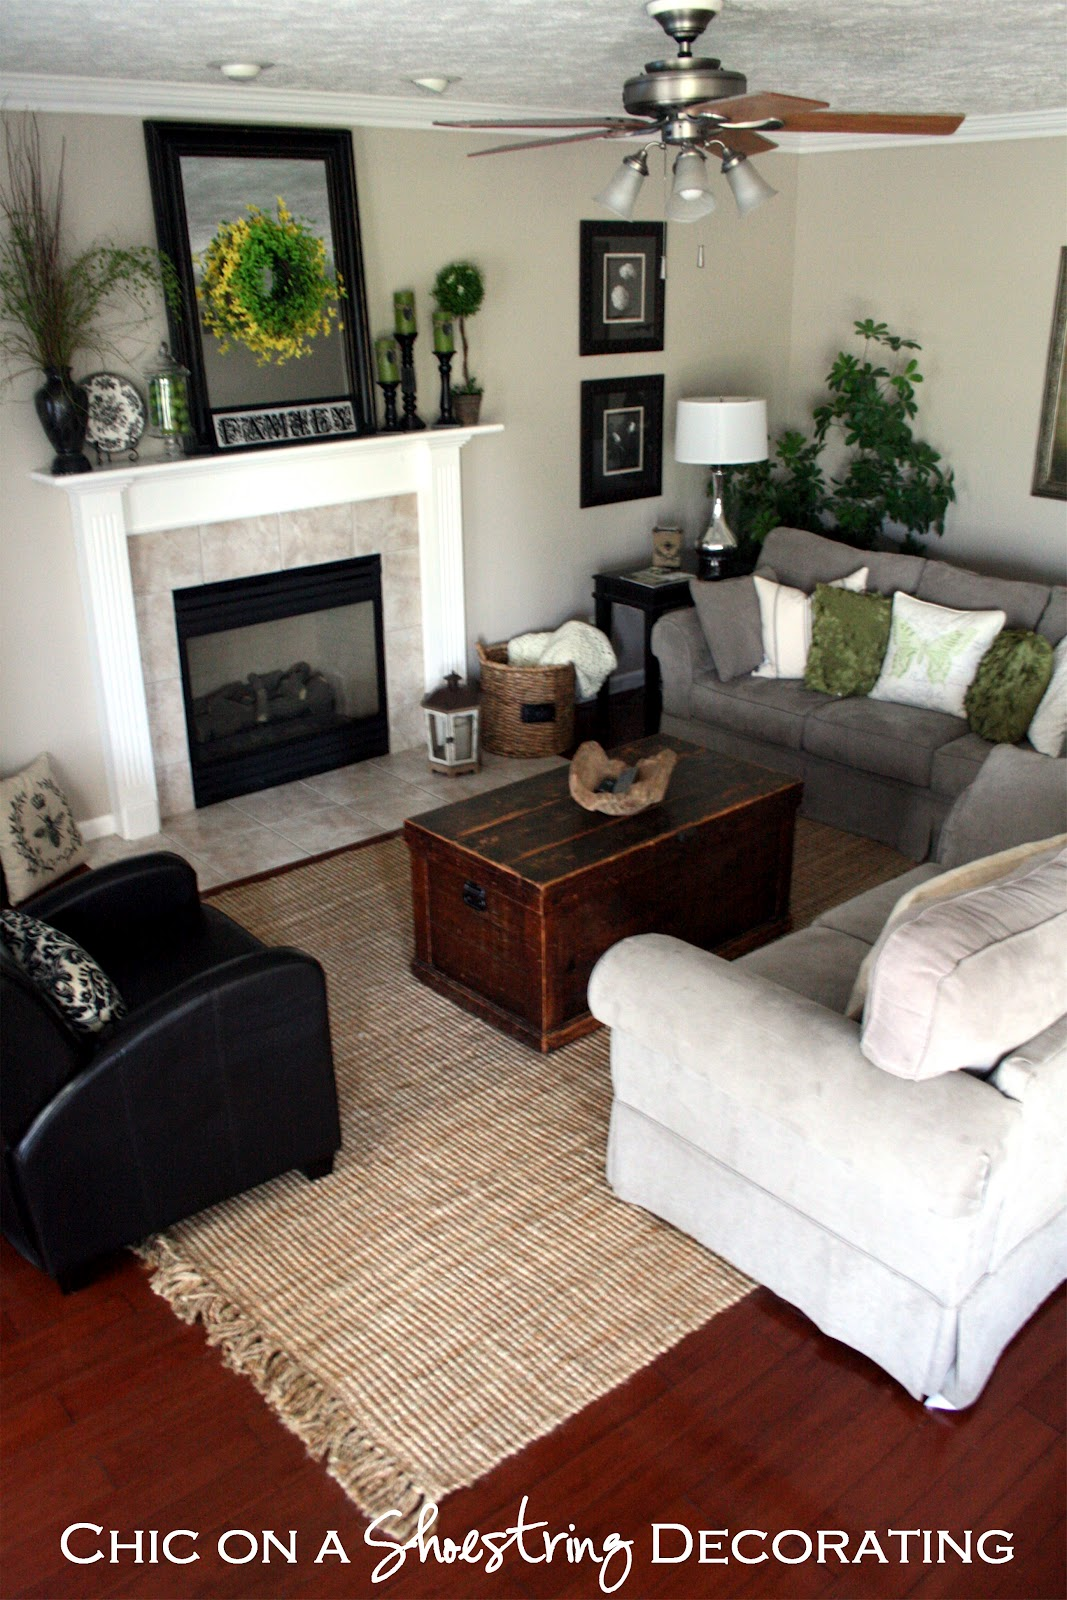 images of small living rooms chic on a shoestring decorating let s cut a rug 20707